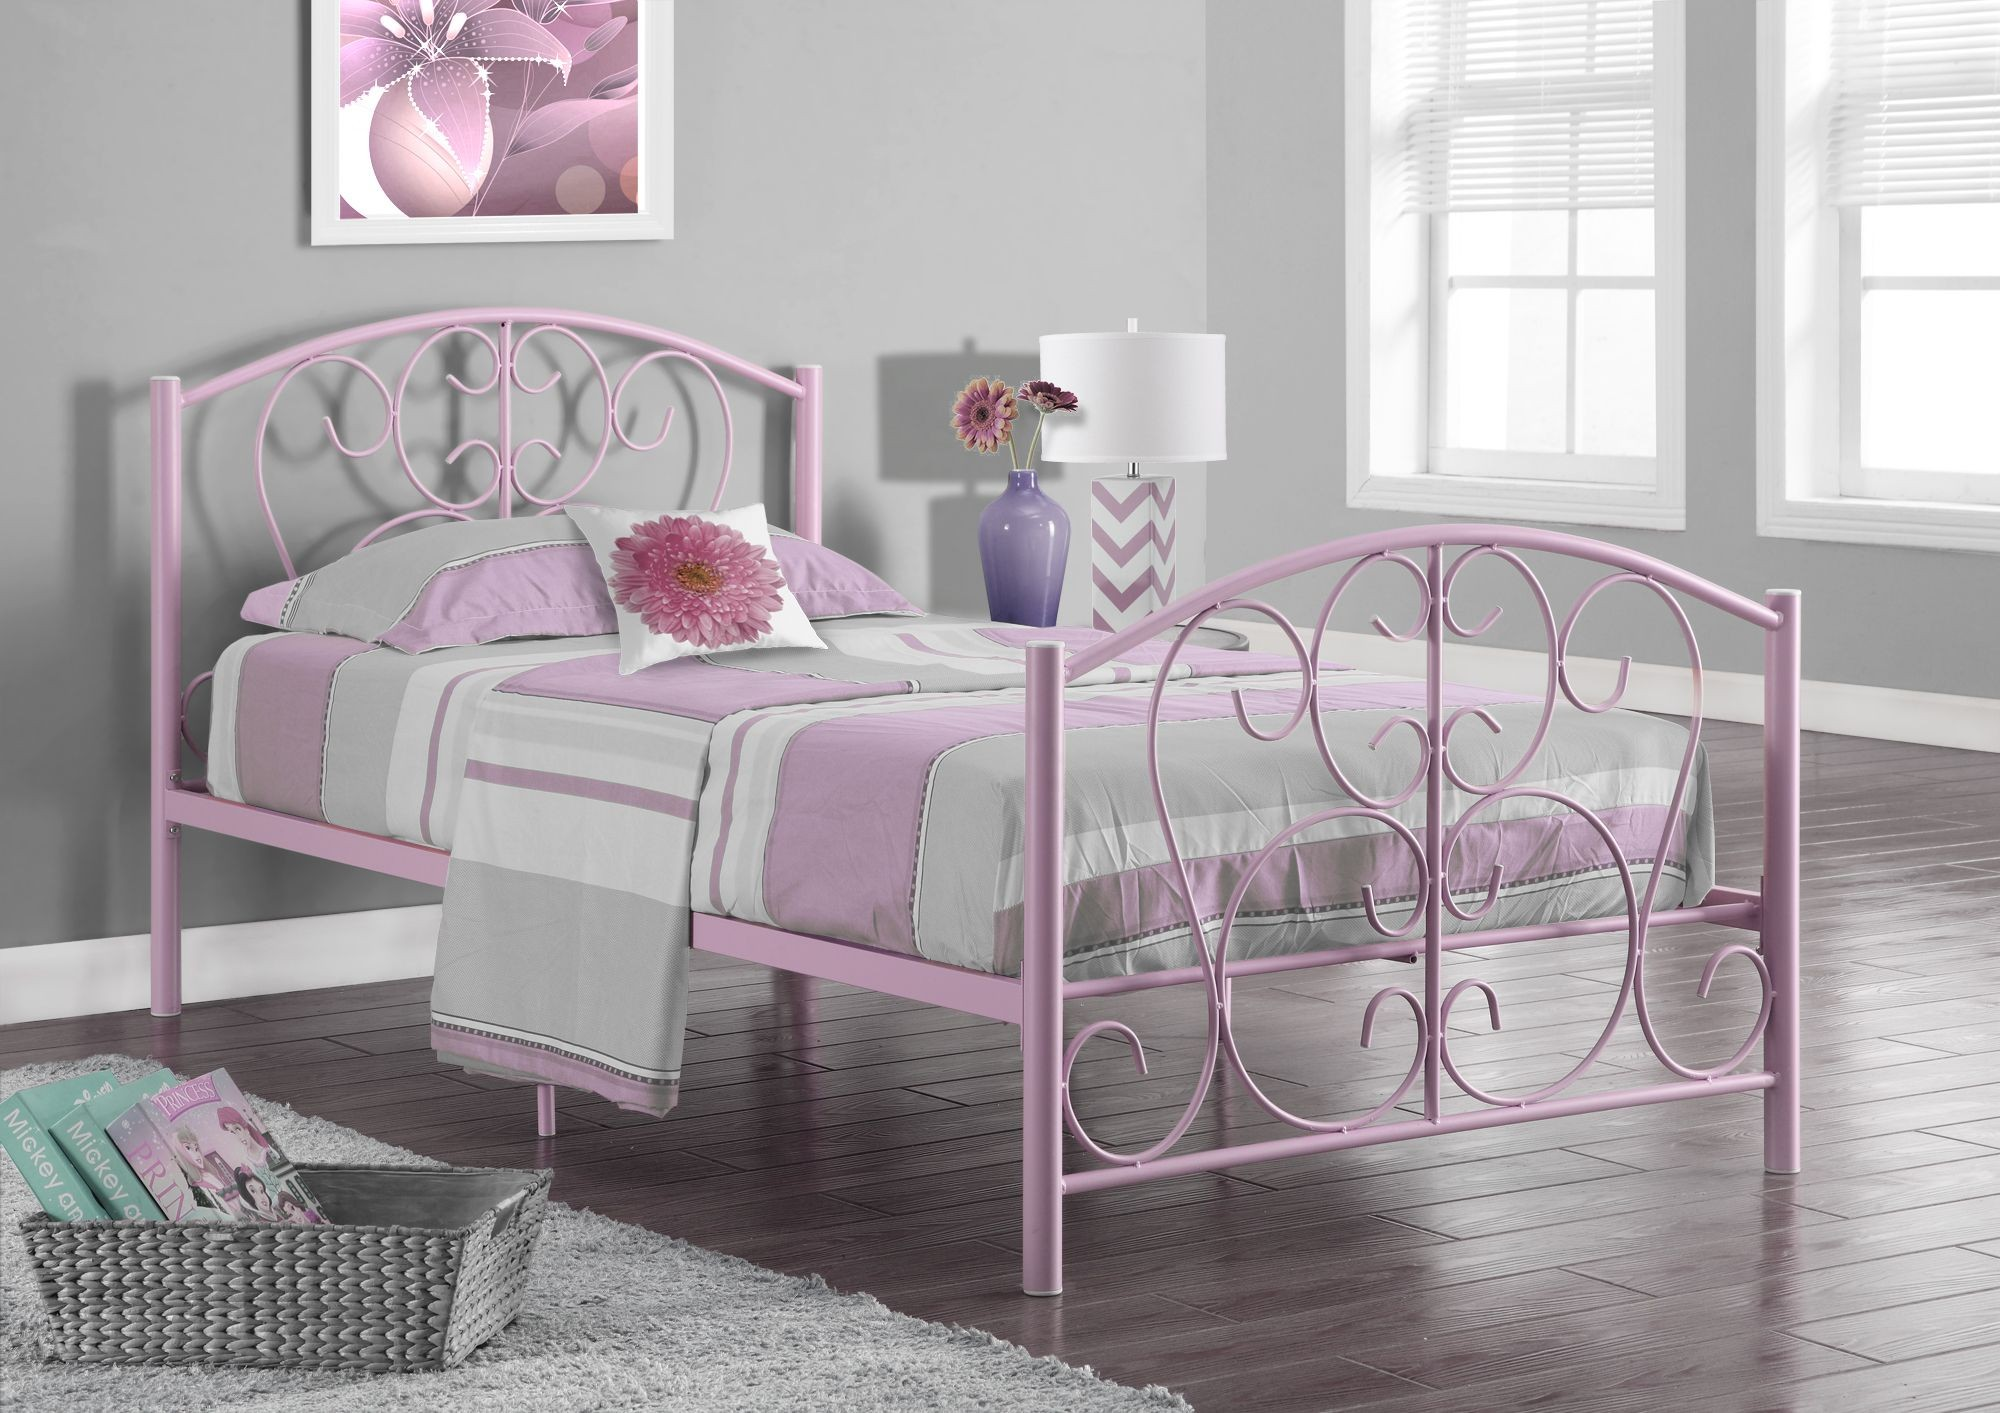 What Are The Dimensions Of A Regular Twin Size Bed